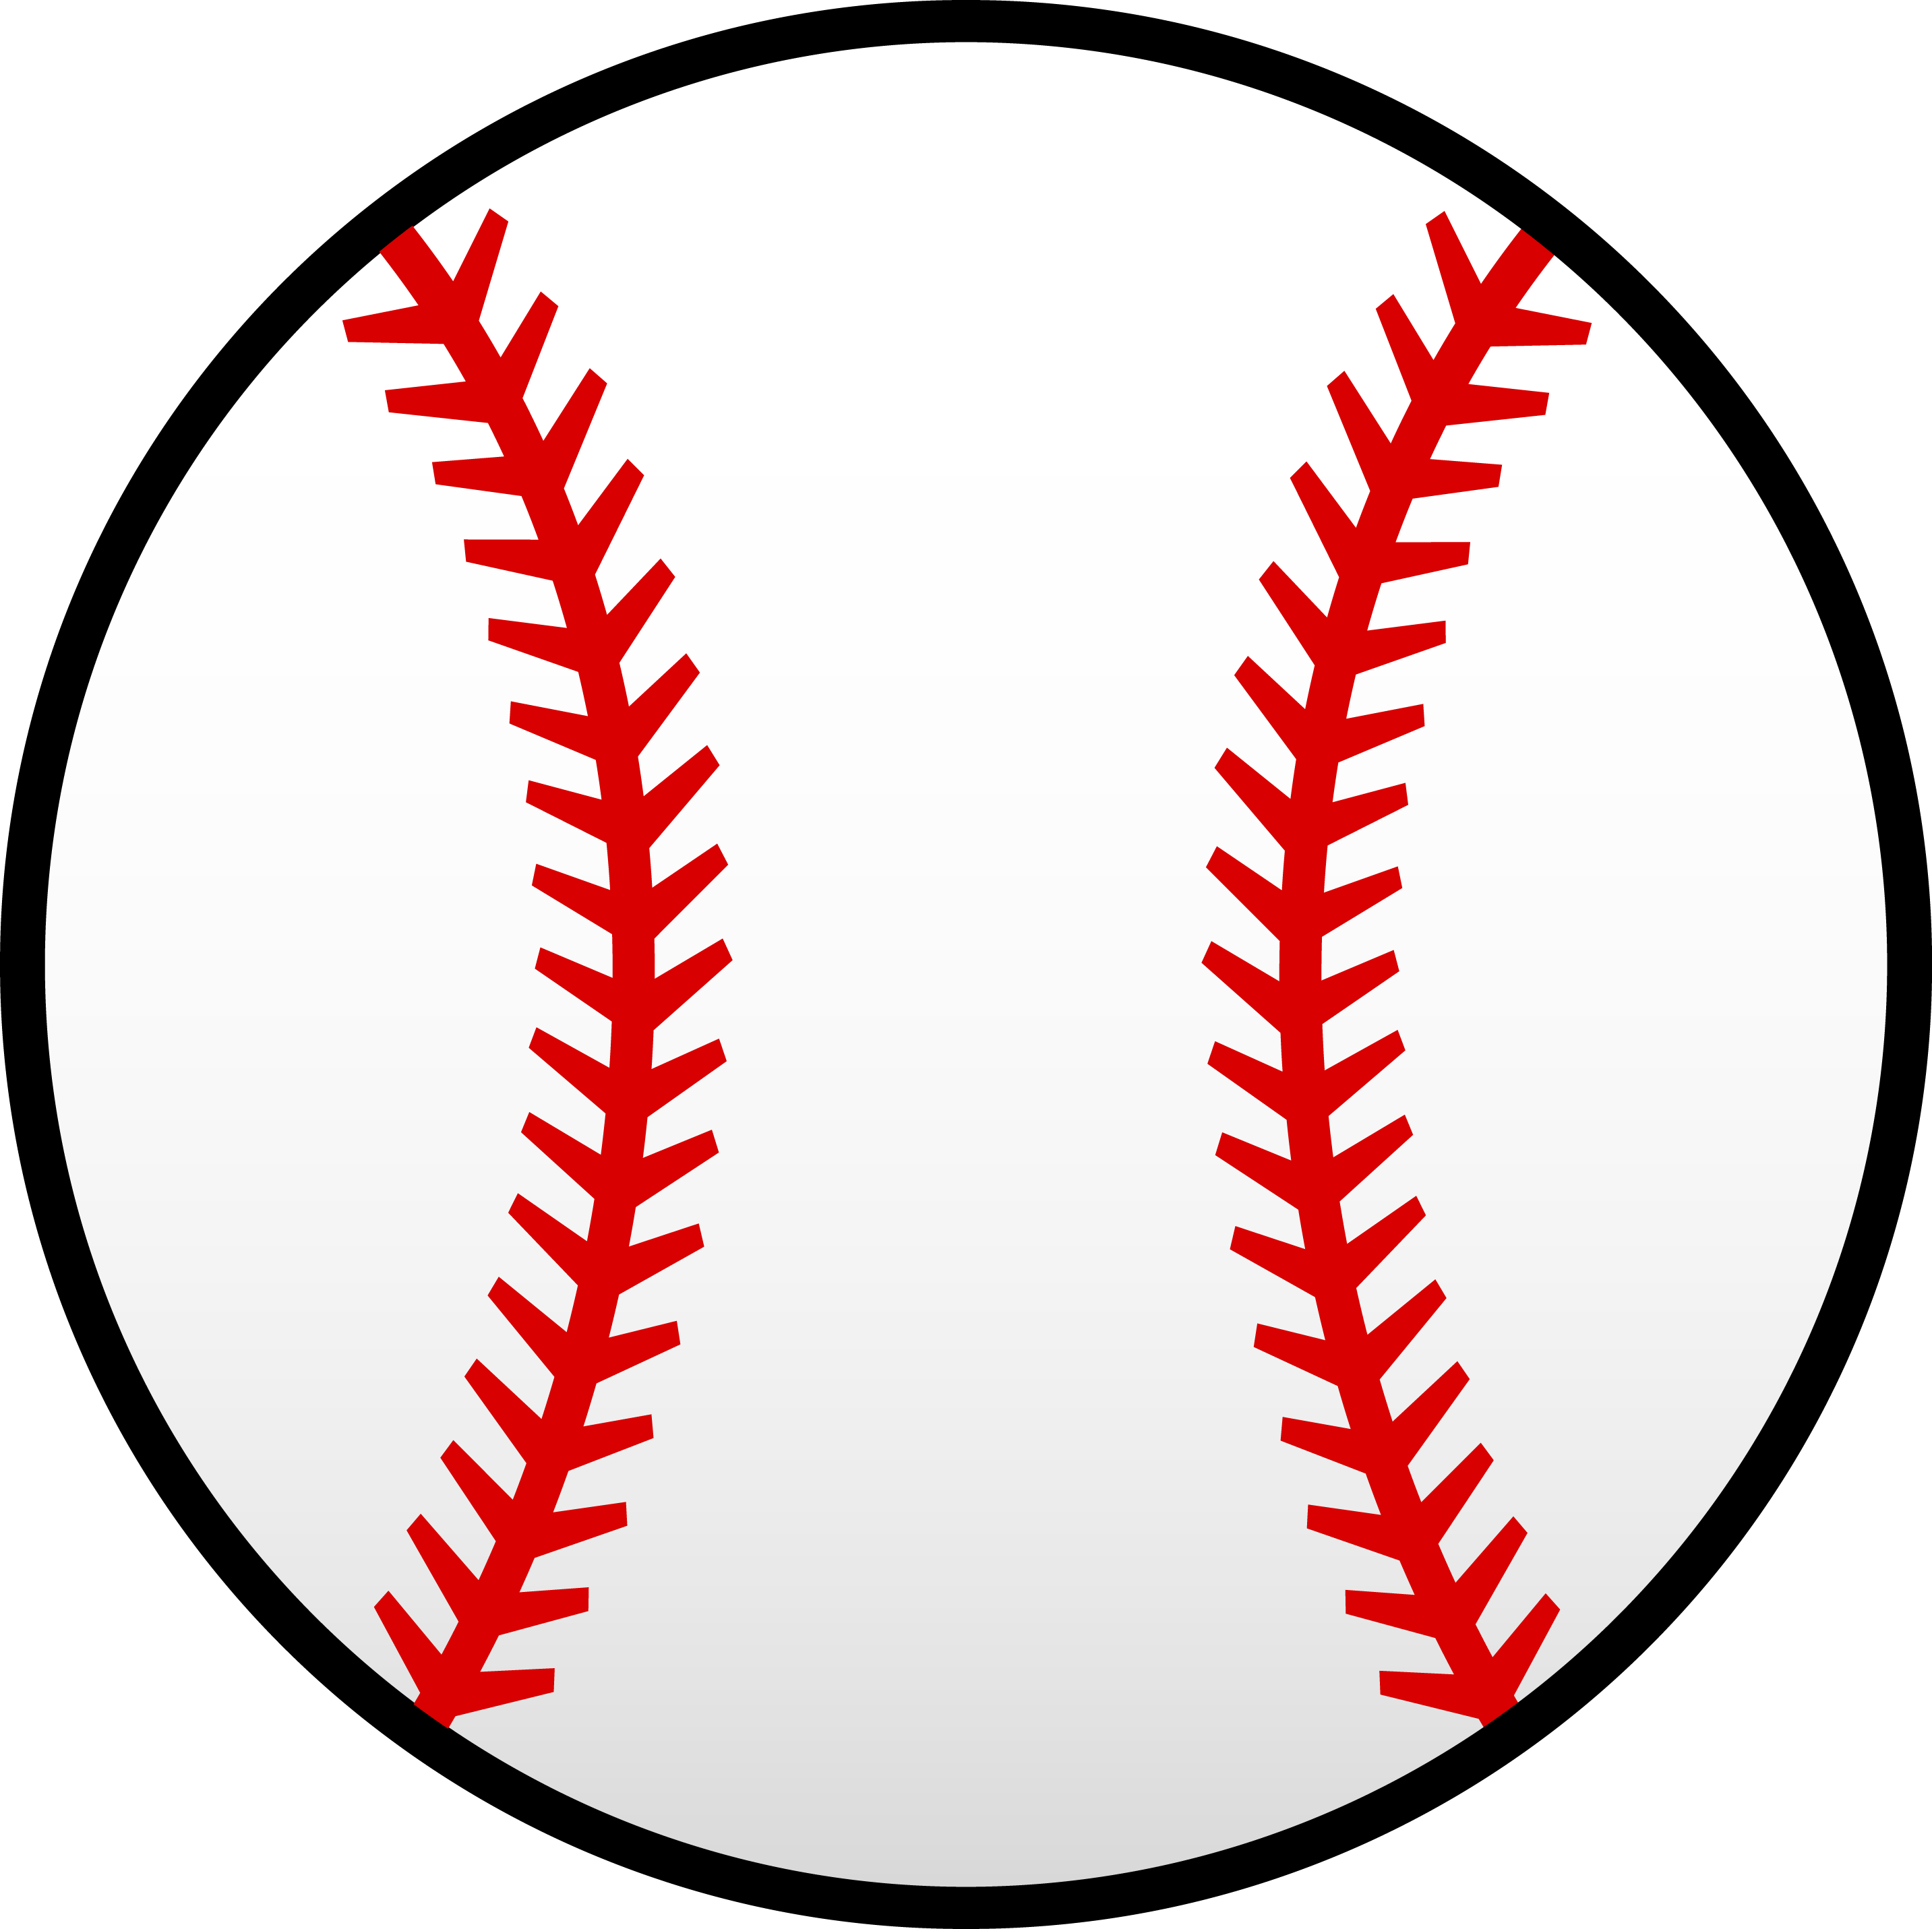 Baseball cover cross clipart picture free download Baseball Pattern | White Baseball With Red Seams - Free Clip Art ... picture free download